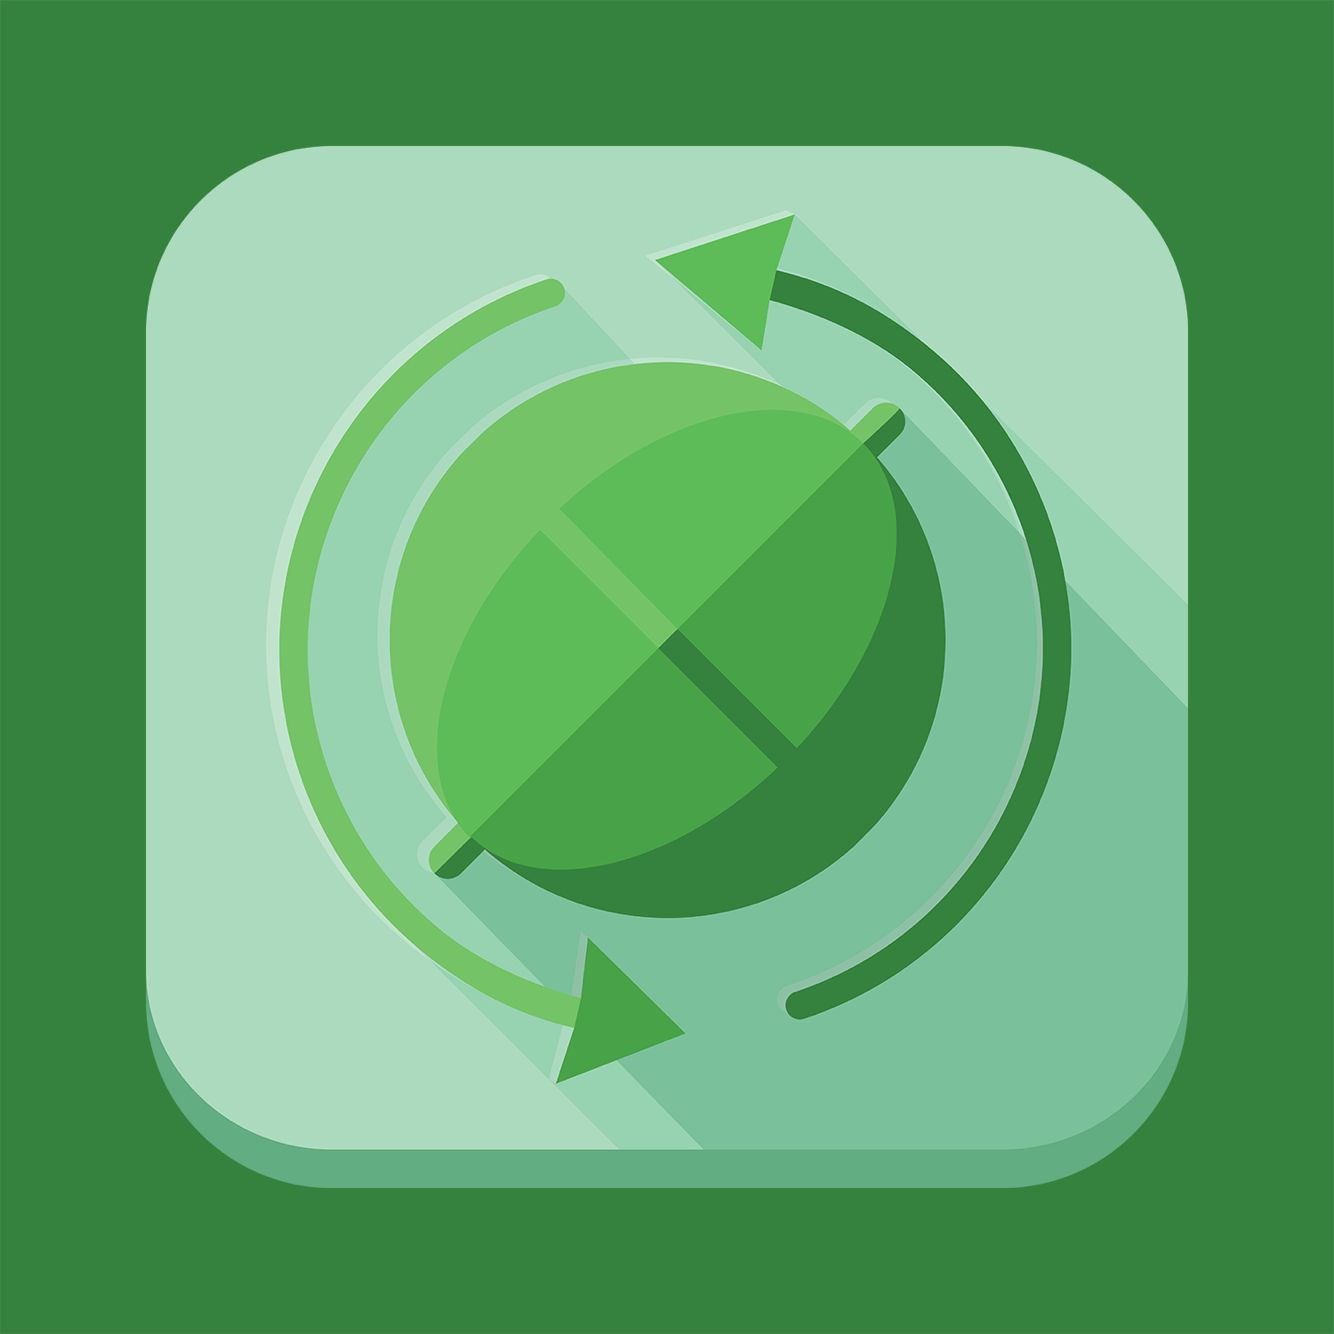 medium resolution of update your world icon character illustration chart diagram illustrations style world